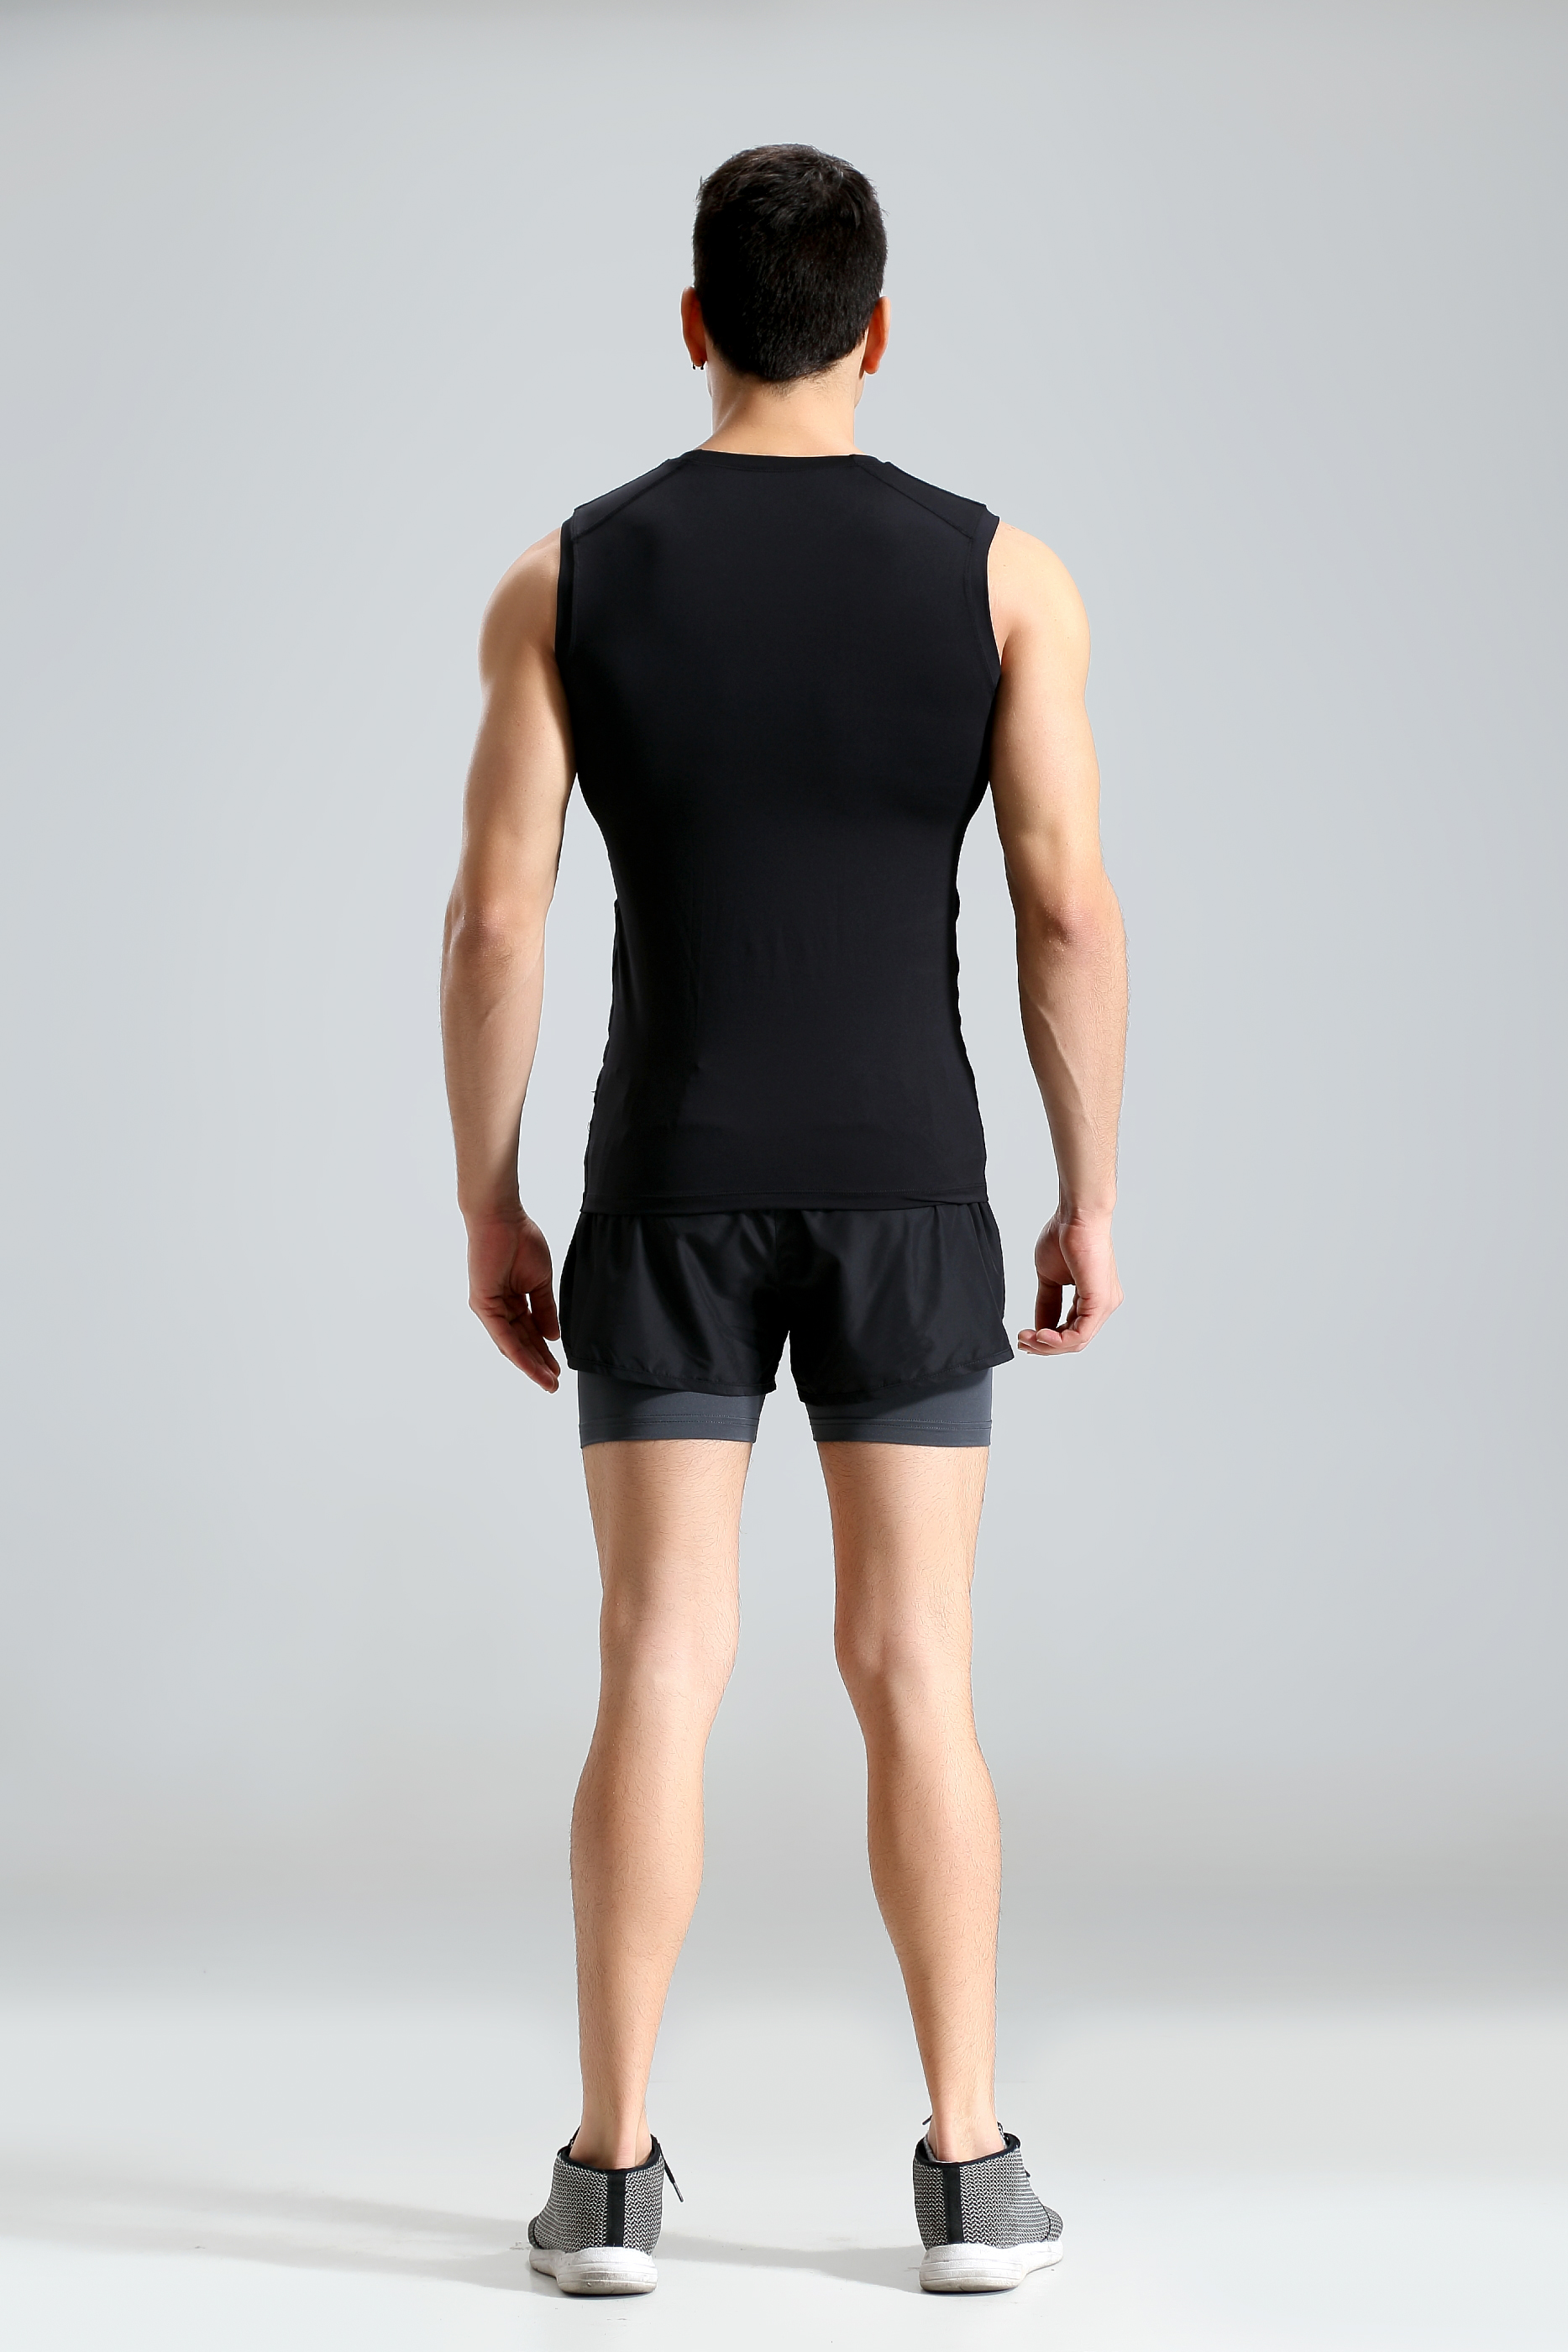 Mens Sports Training T-shirt Casual Sleeveless Vest Perspiration Wicking Tights